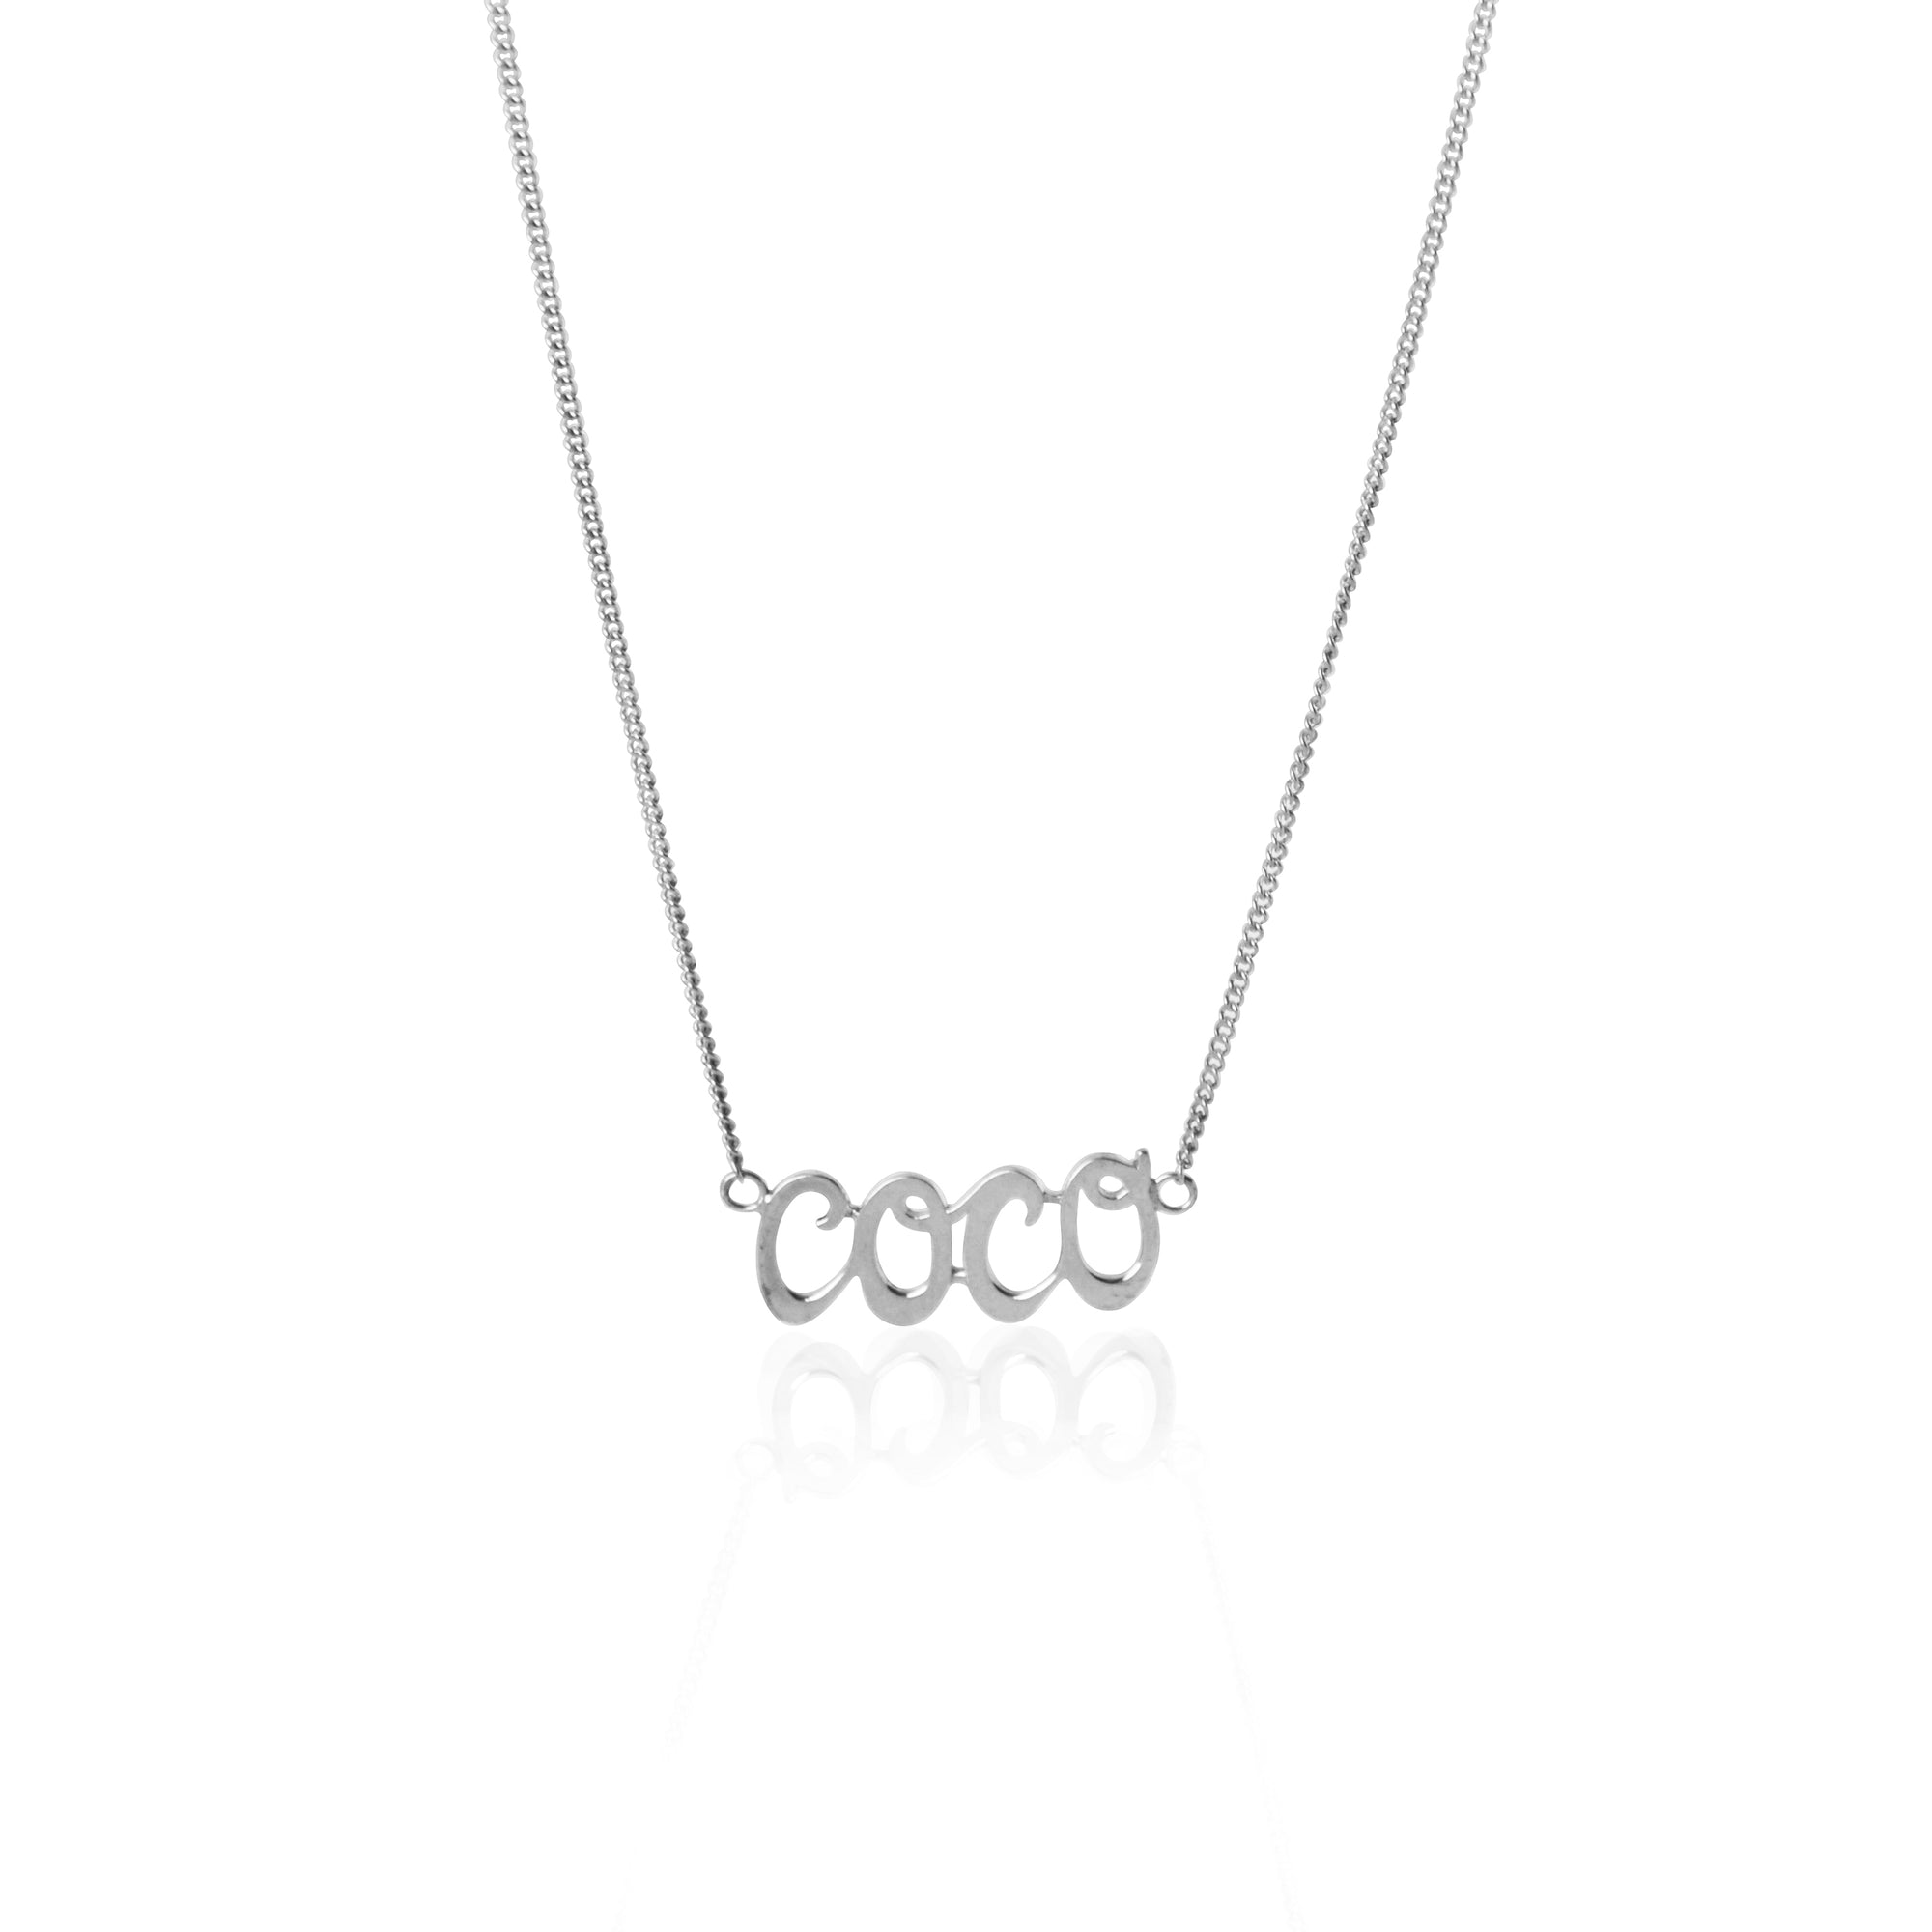 Coconut and Bliss x La Luna Rose Coco Necklace - SILVER